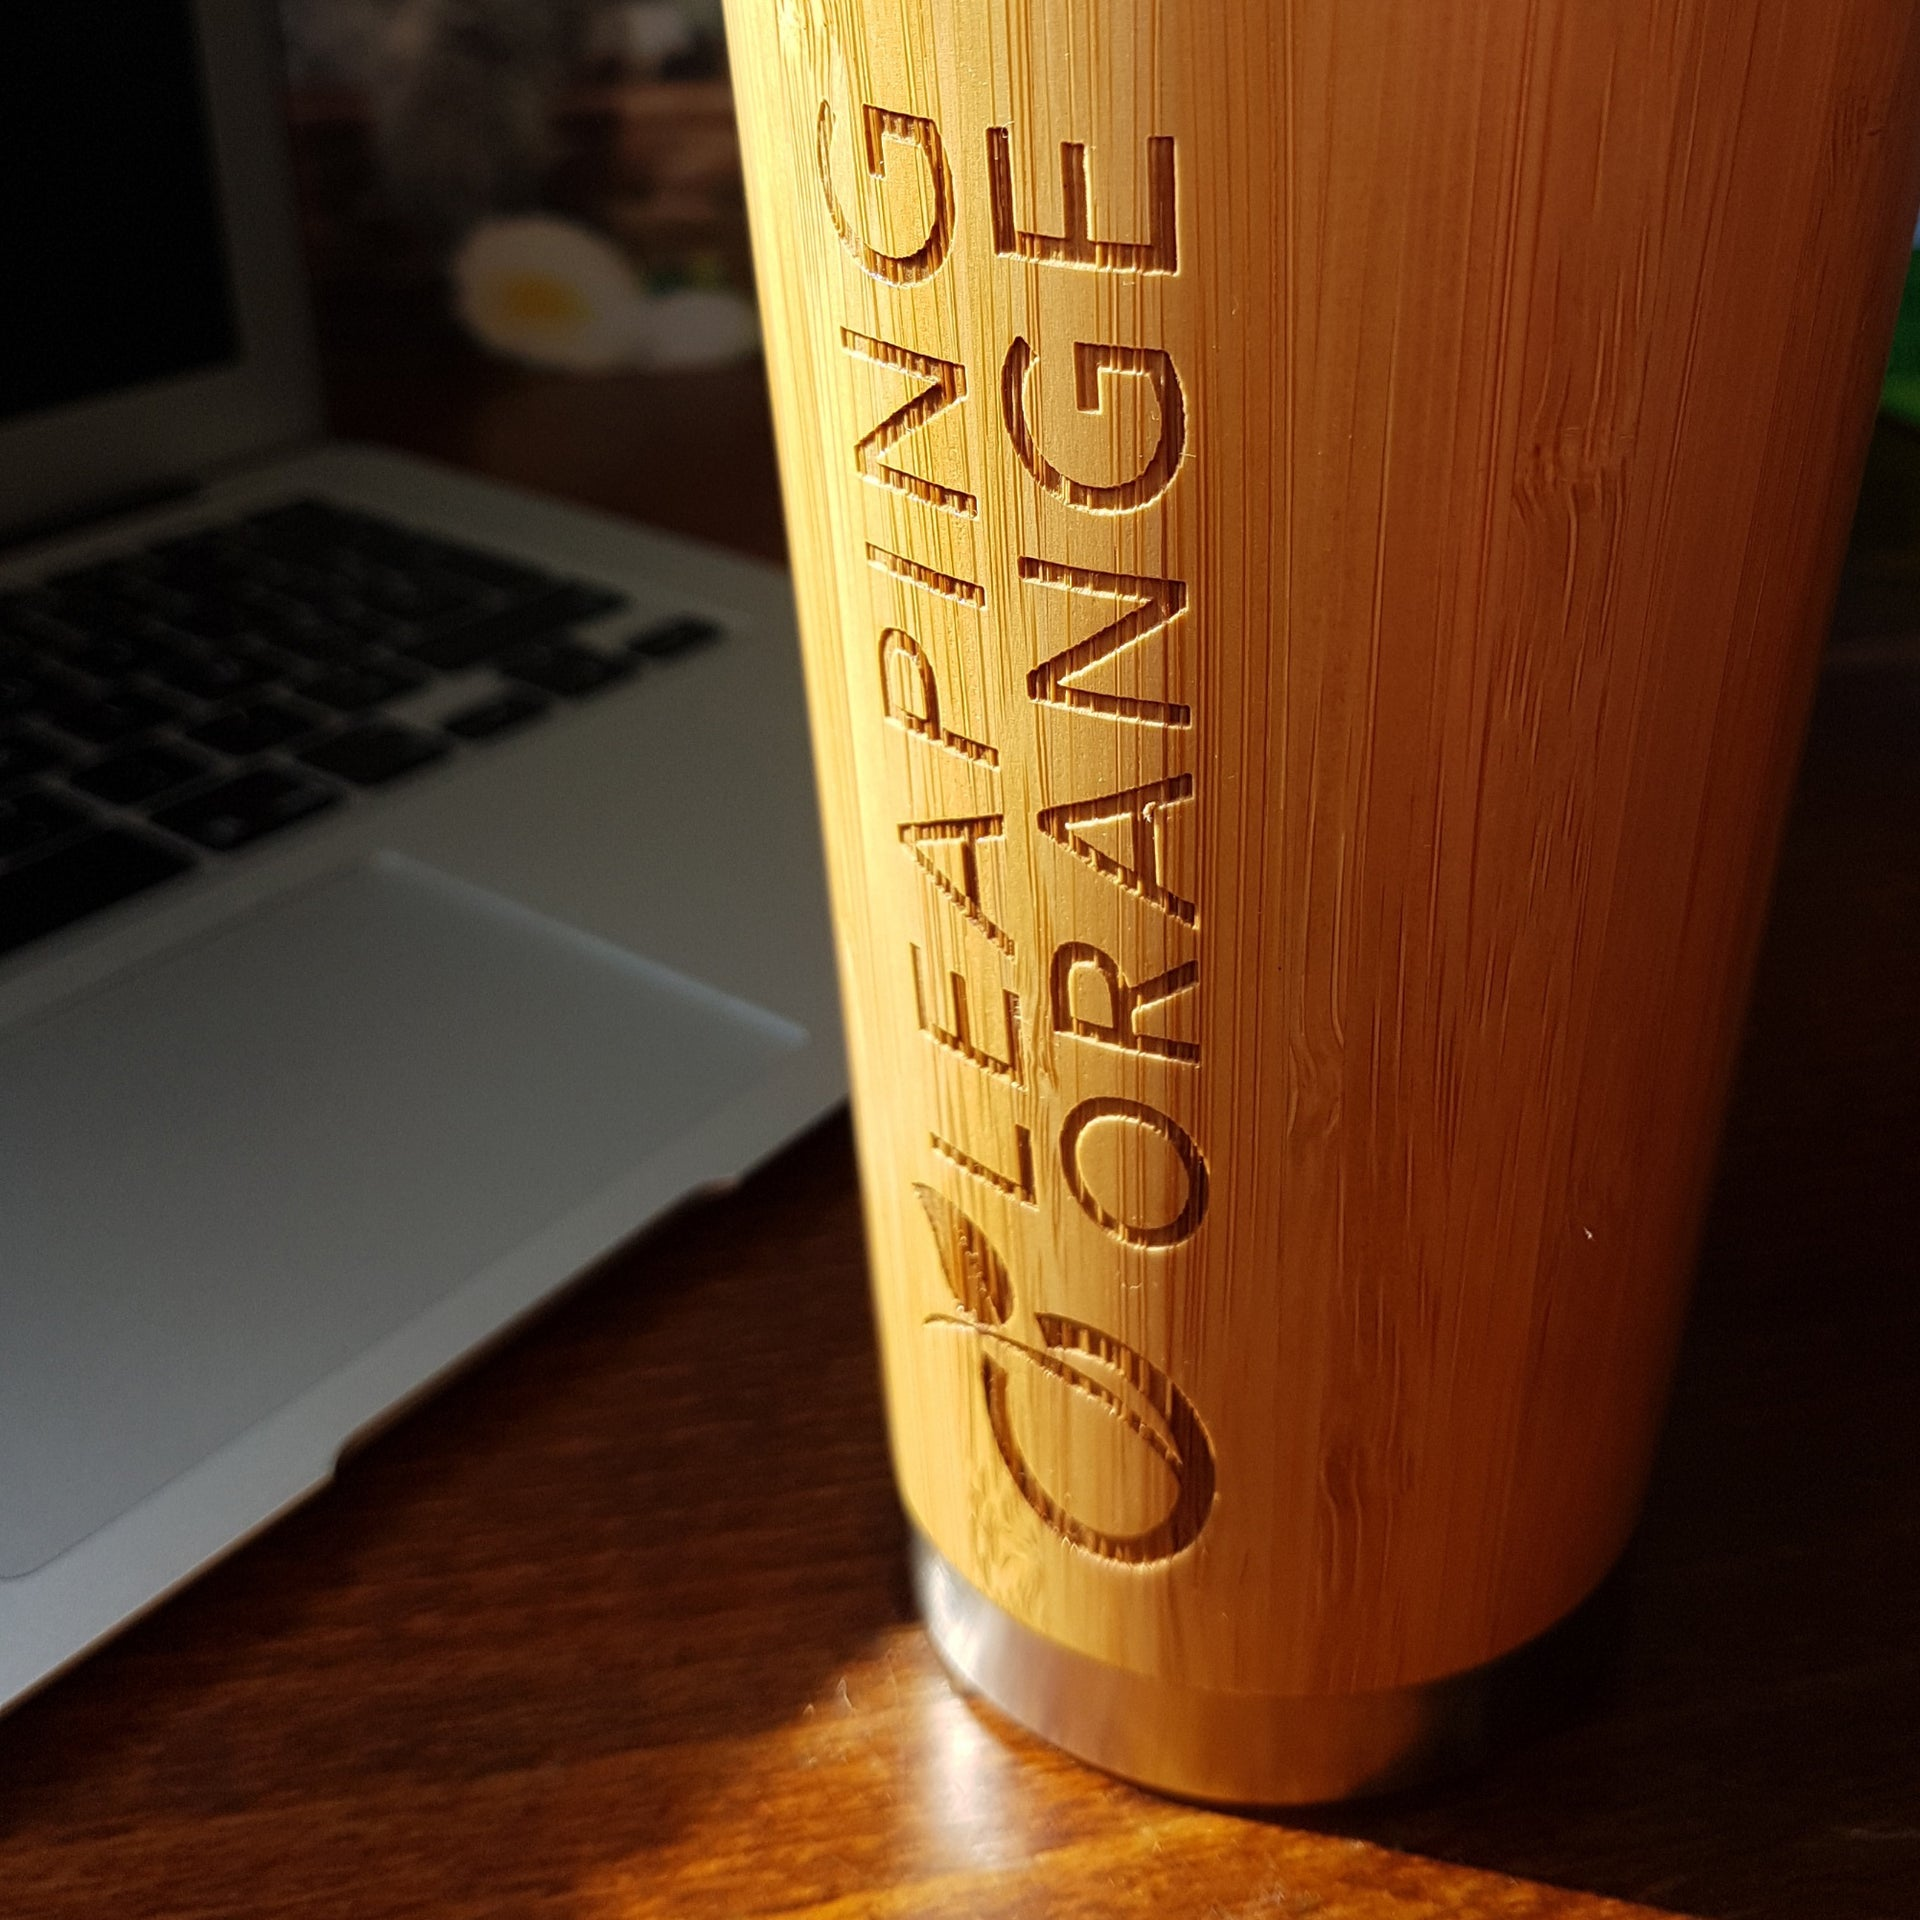 LOGO Custom Engraved Wood Travel Mug Wooden Tumbler